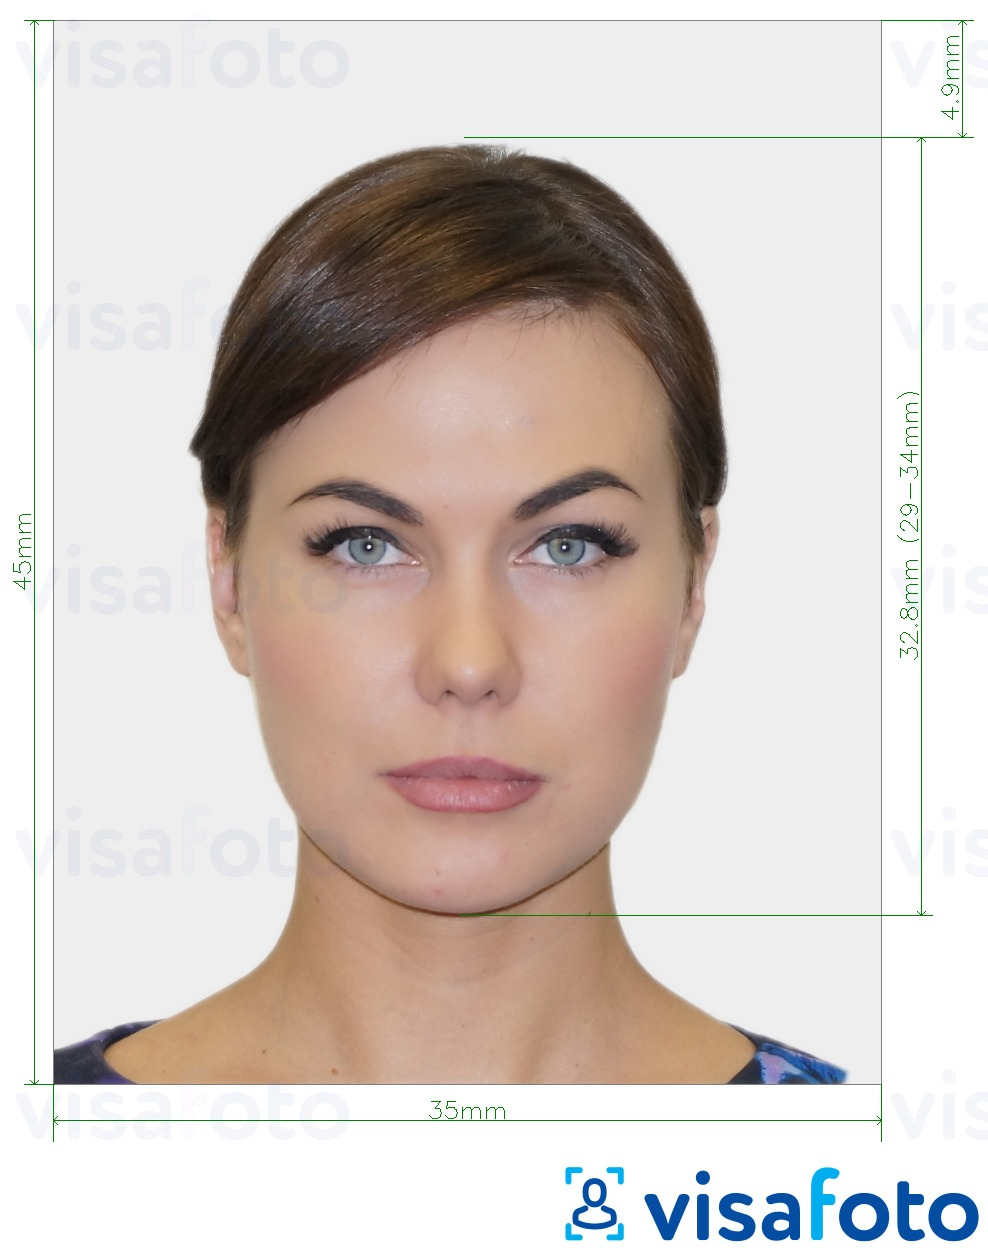 Example of photo for UK Visa 35x45 mm (3.5x4.5 cm) with exact size specification